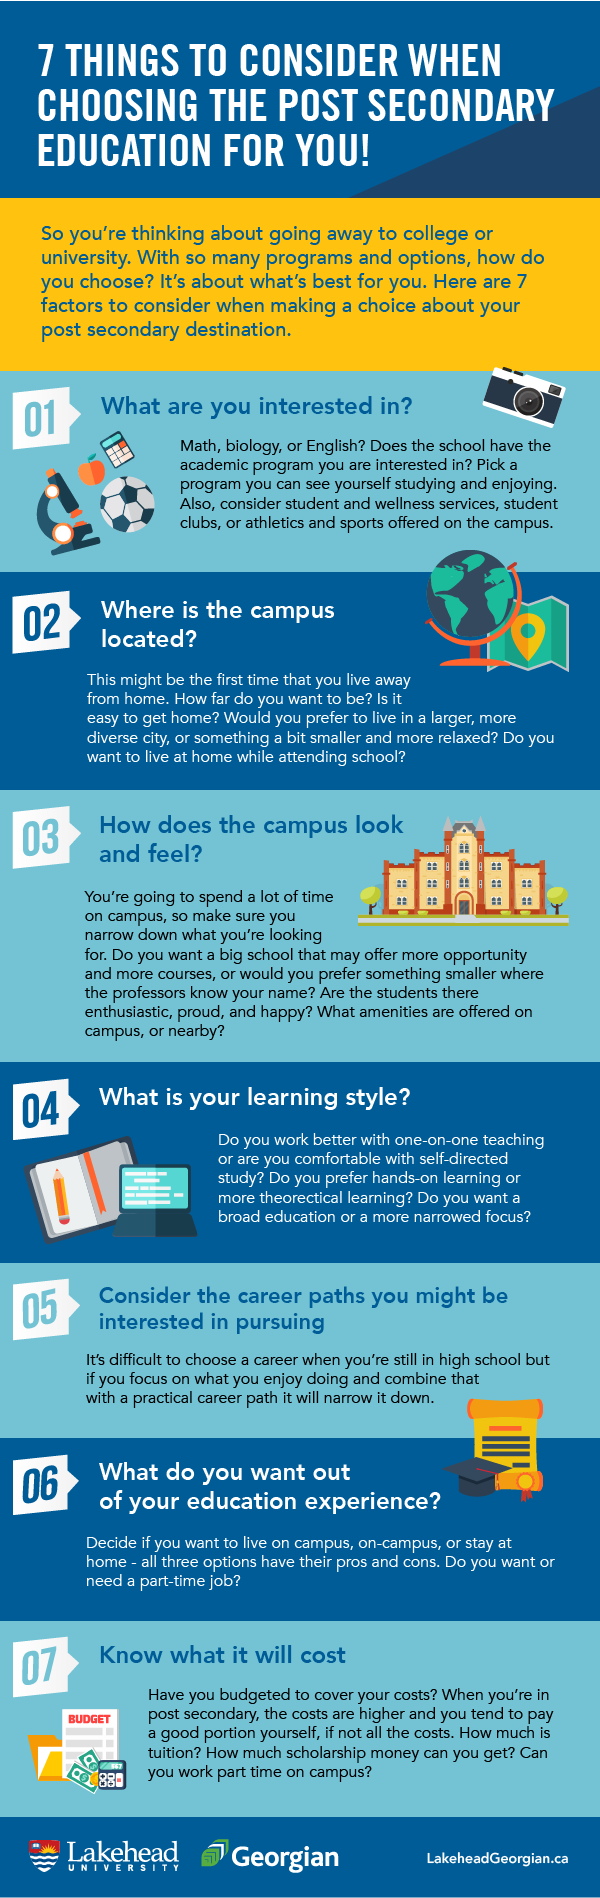 7 Things to Consider When Choosing a Post Secondary Education